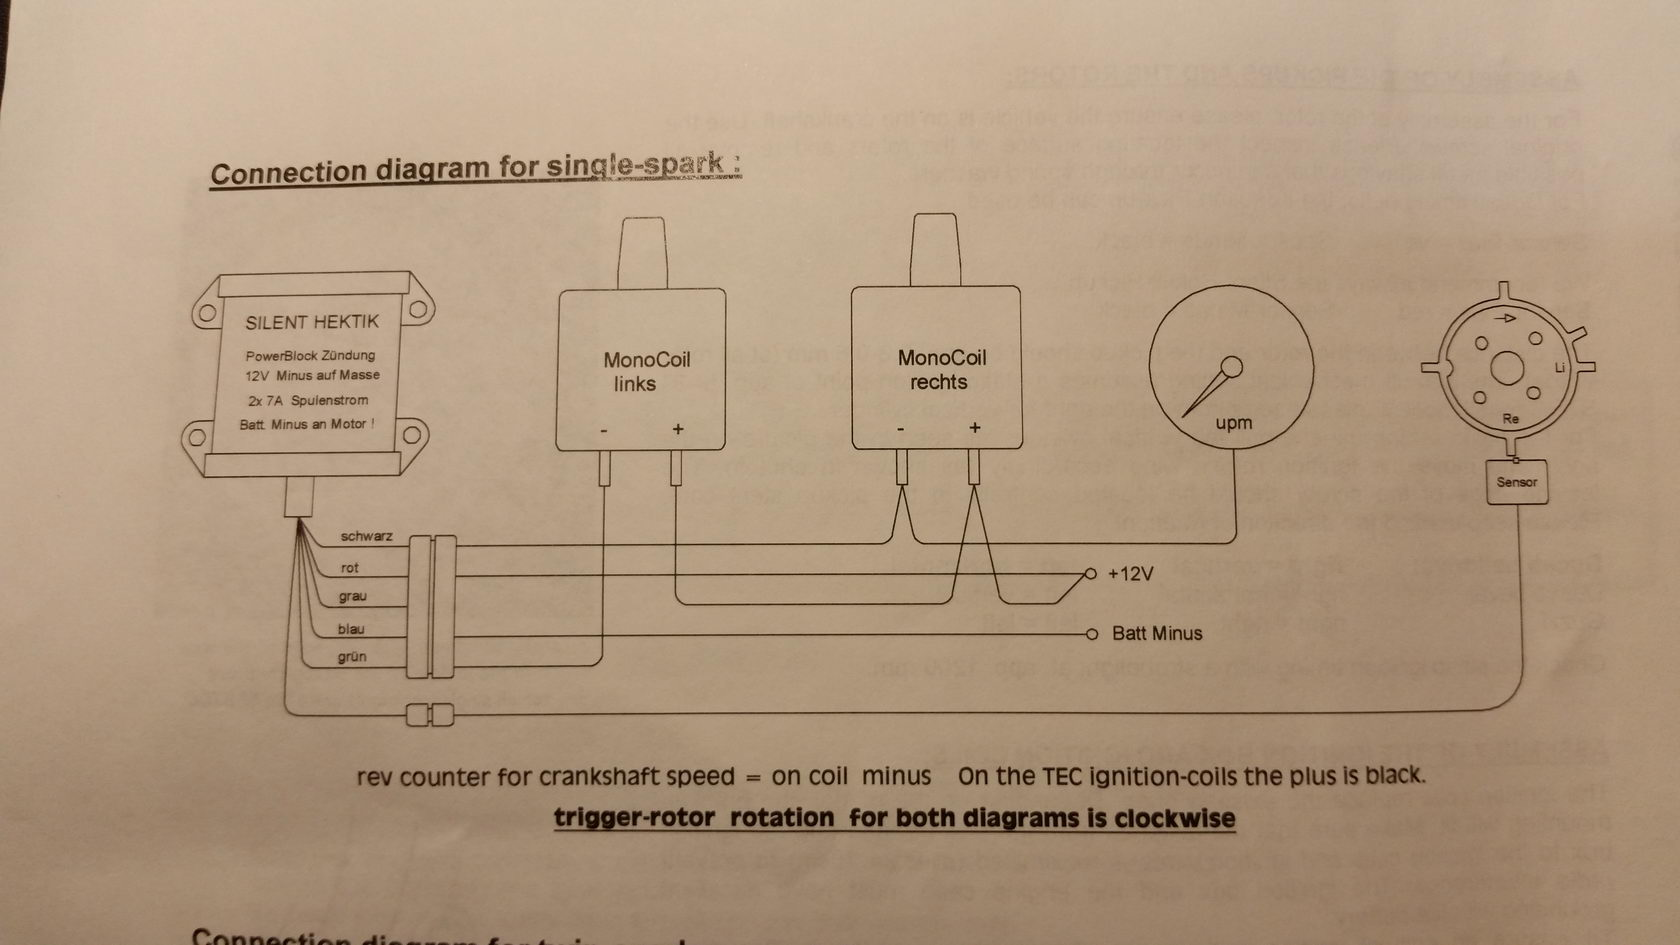 ducati ignition wiring diagram wrg 4272  ducati hypermotard wiring diagram  wrg 4272  ducati hypermotard wiring diagram